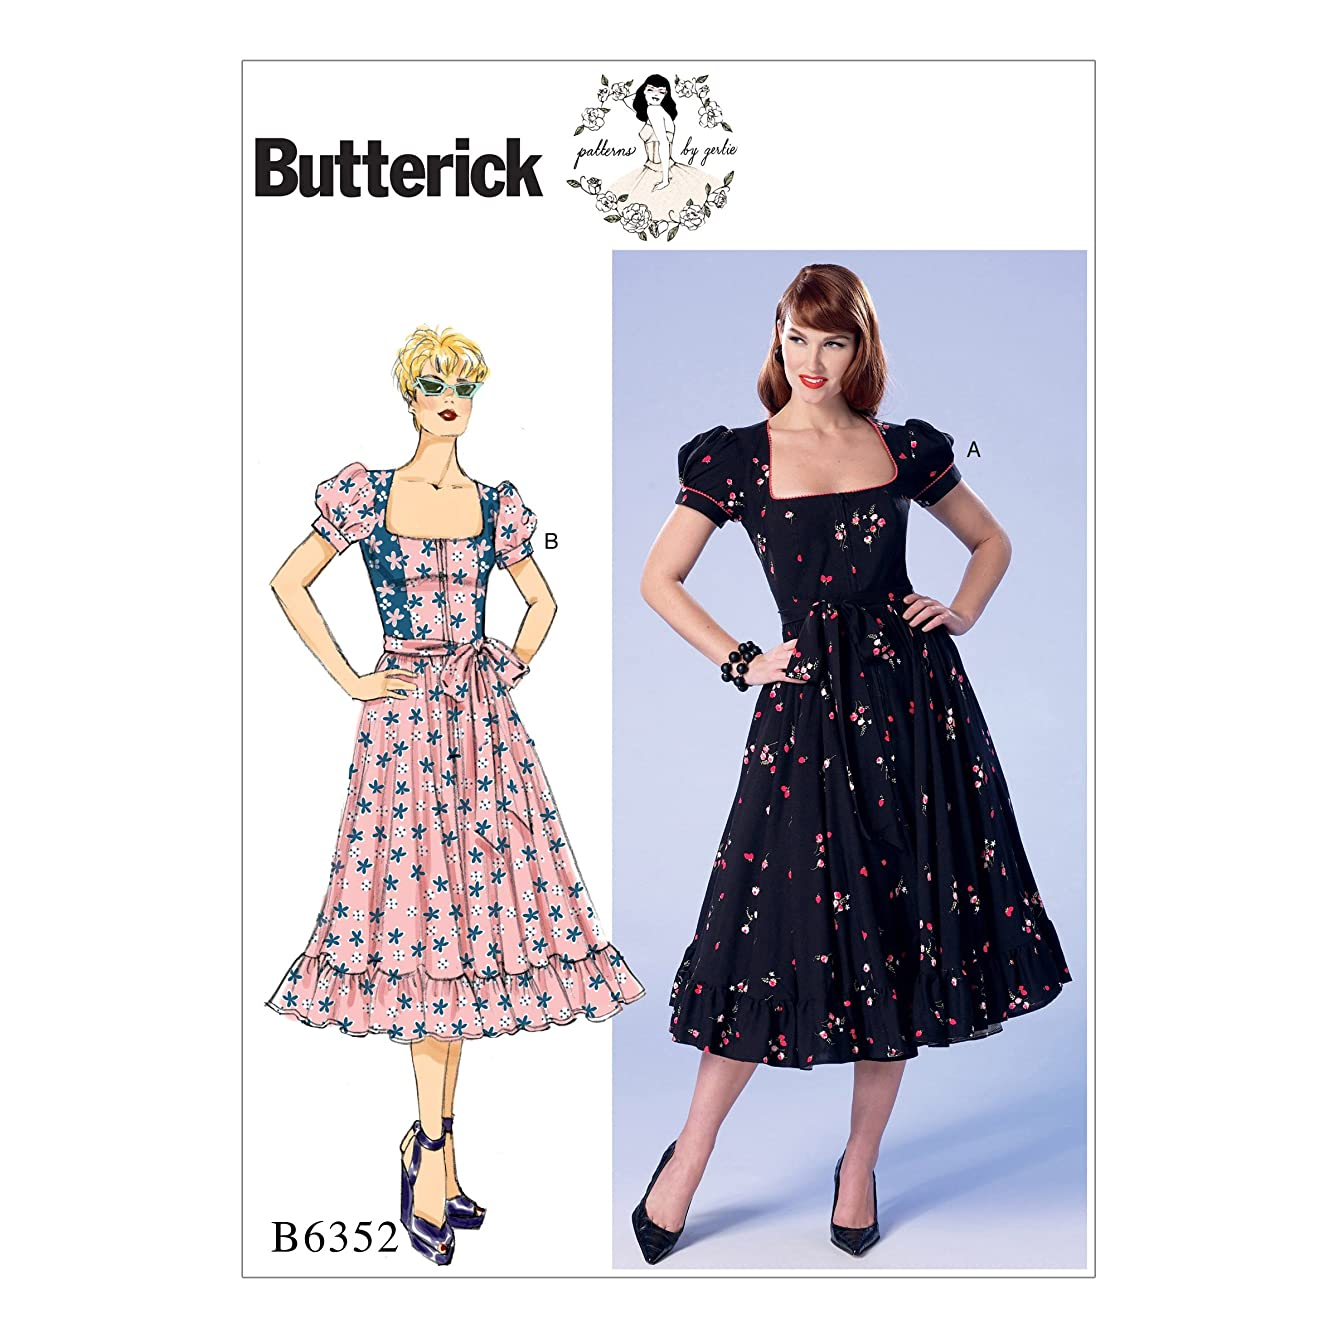 Butterick Patterns B6352 A5 Misses'/Misses' Petite Square-Neck, Zip-Front, Ruffled Dresses and Belt by Gertie, Size 6-14 (6352)